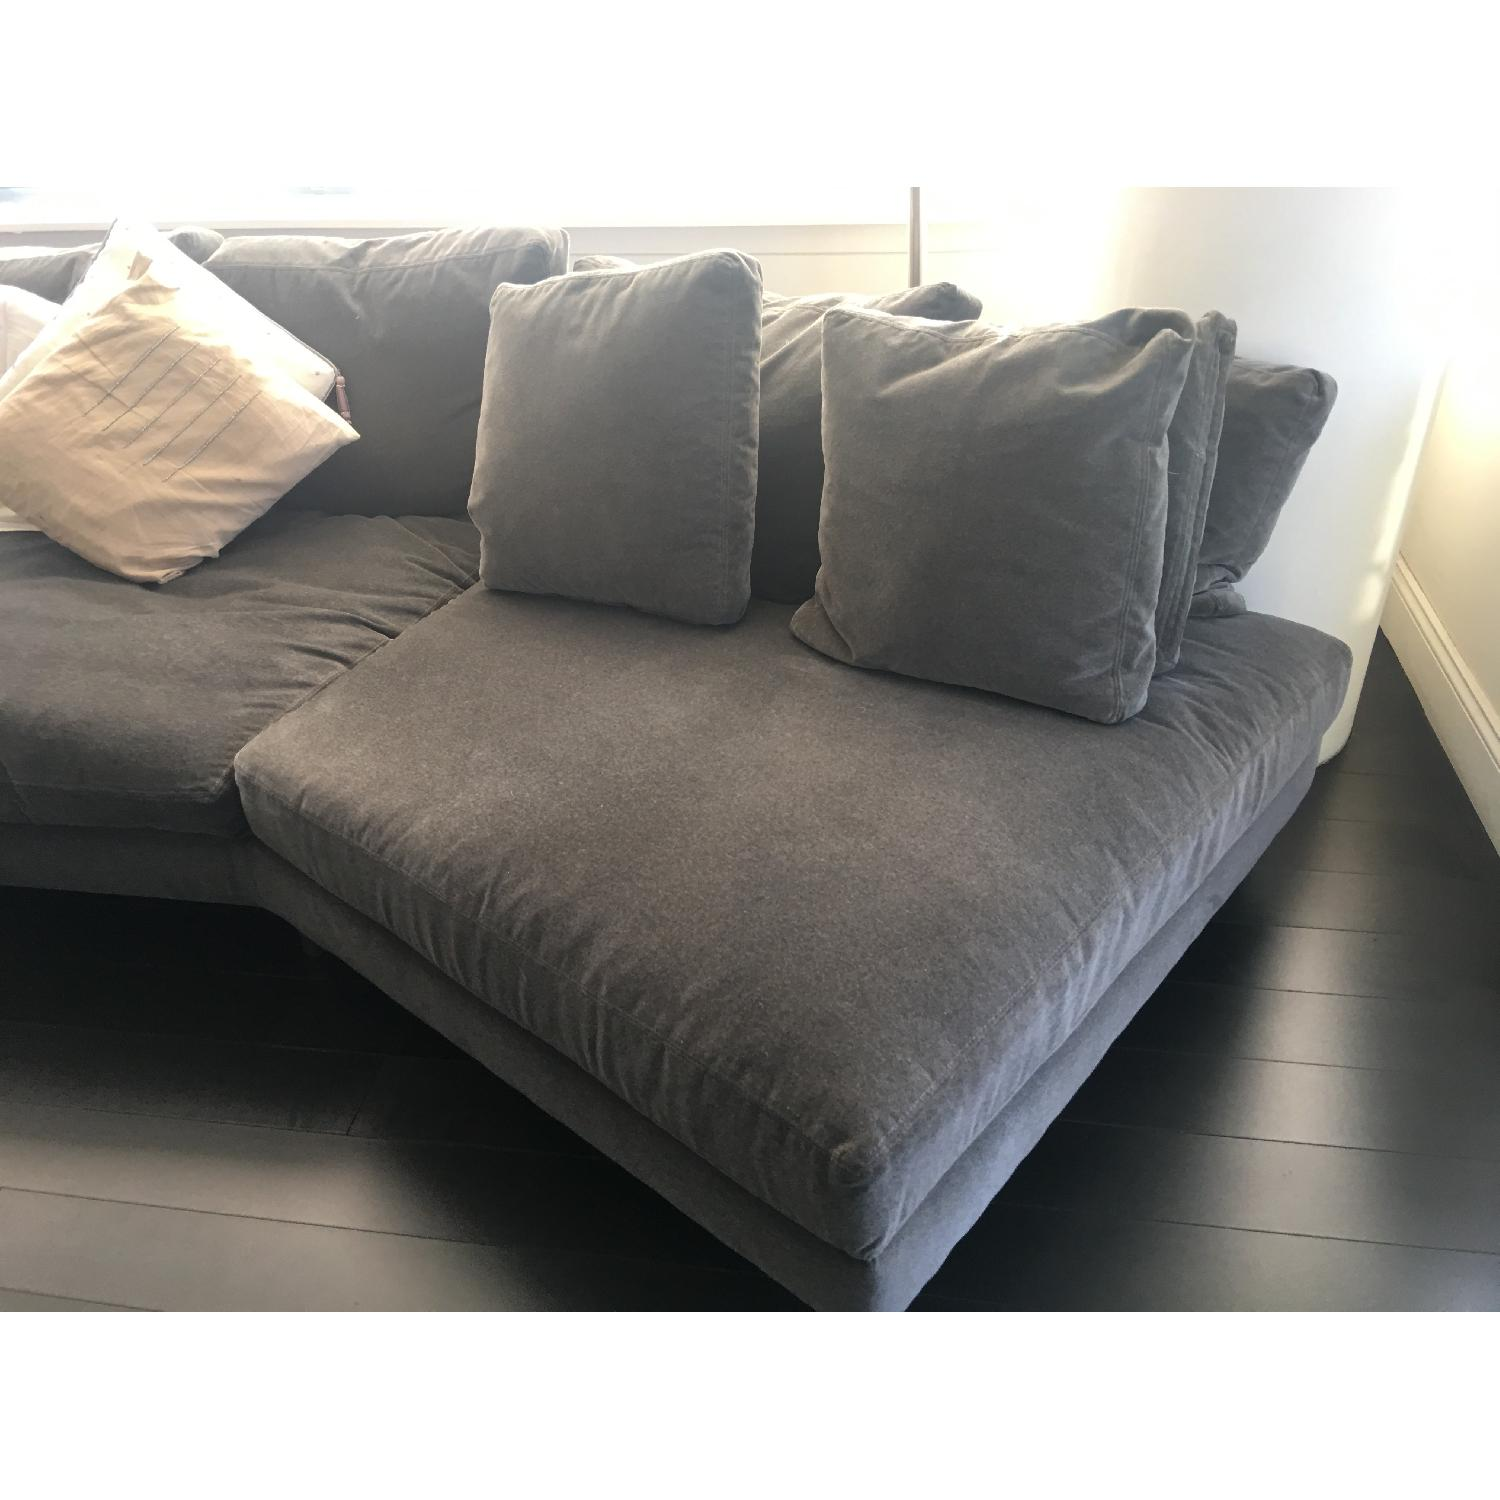 Room & Board 3 Piece Upholstered Sectional Sofa-3